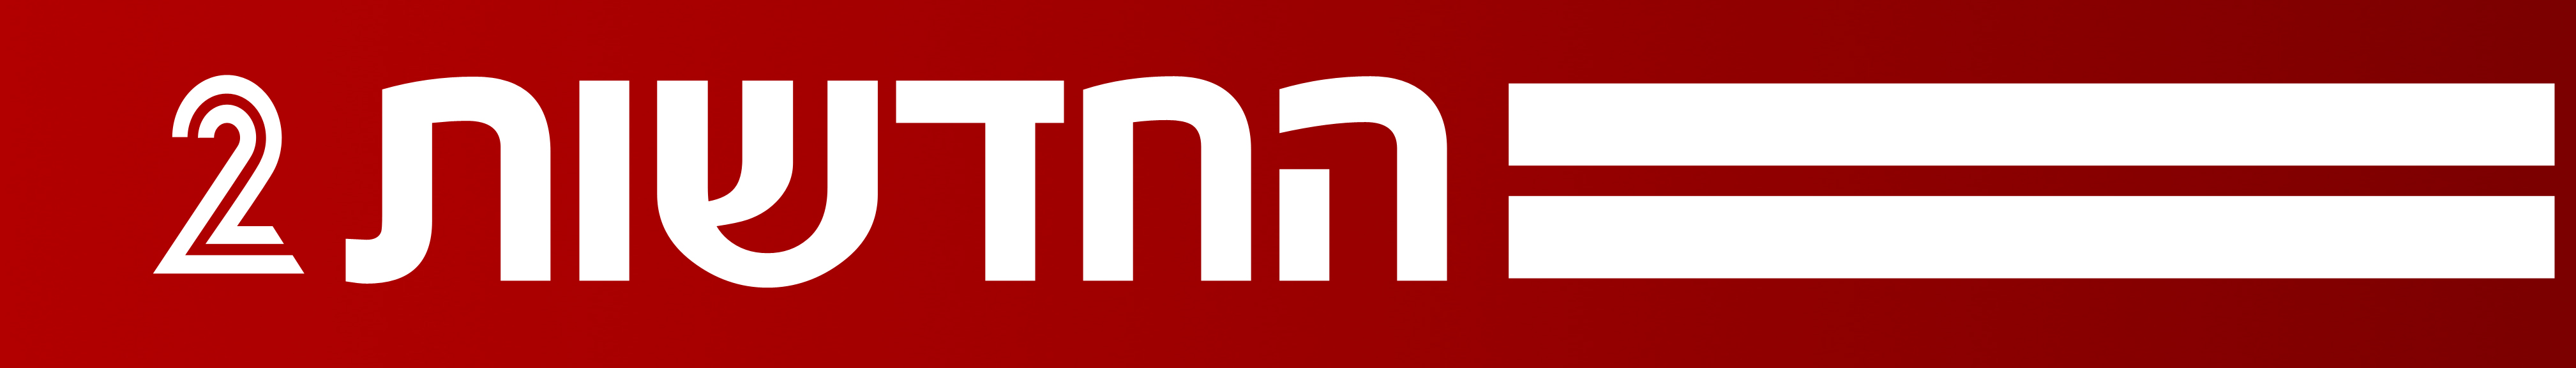 logo_News2 print red